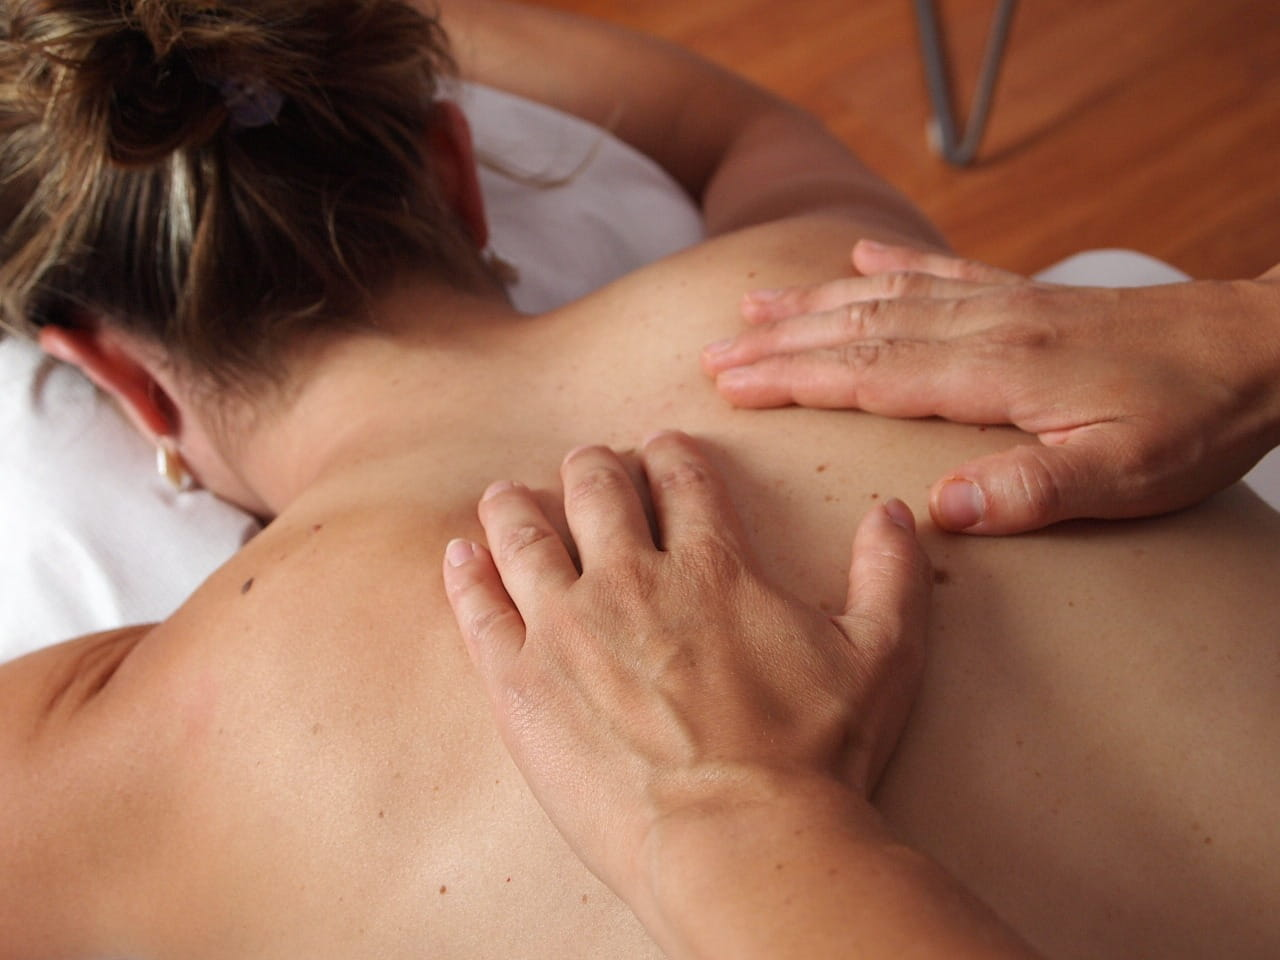 Petrissage (Kneading) - swedish massage